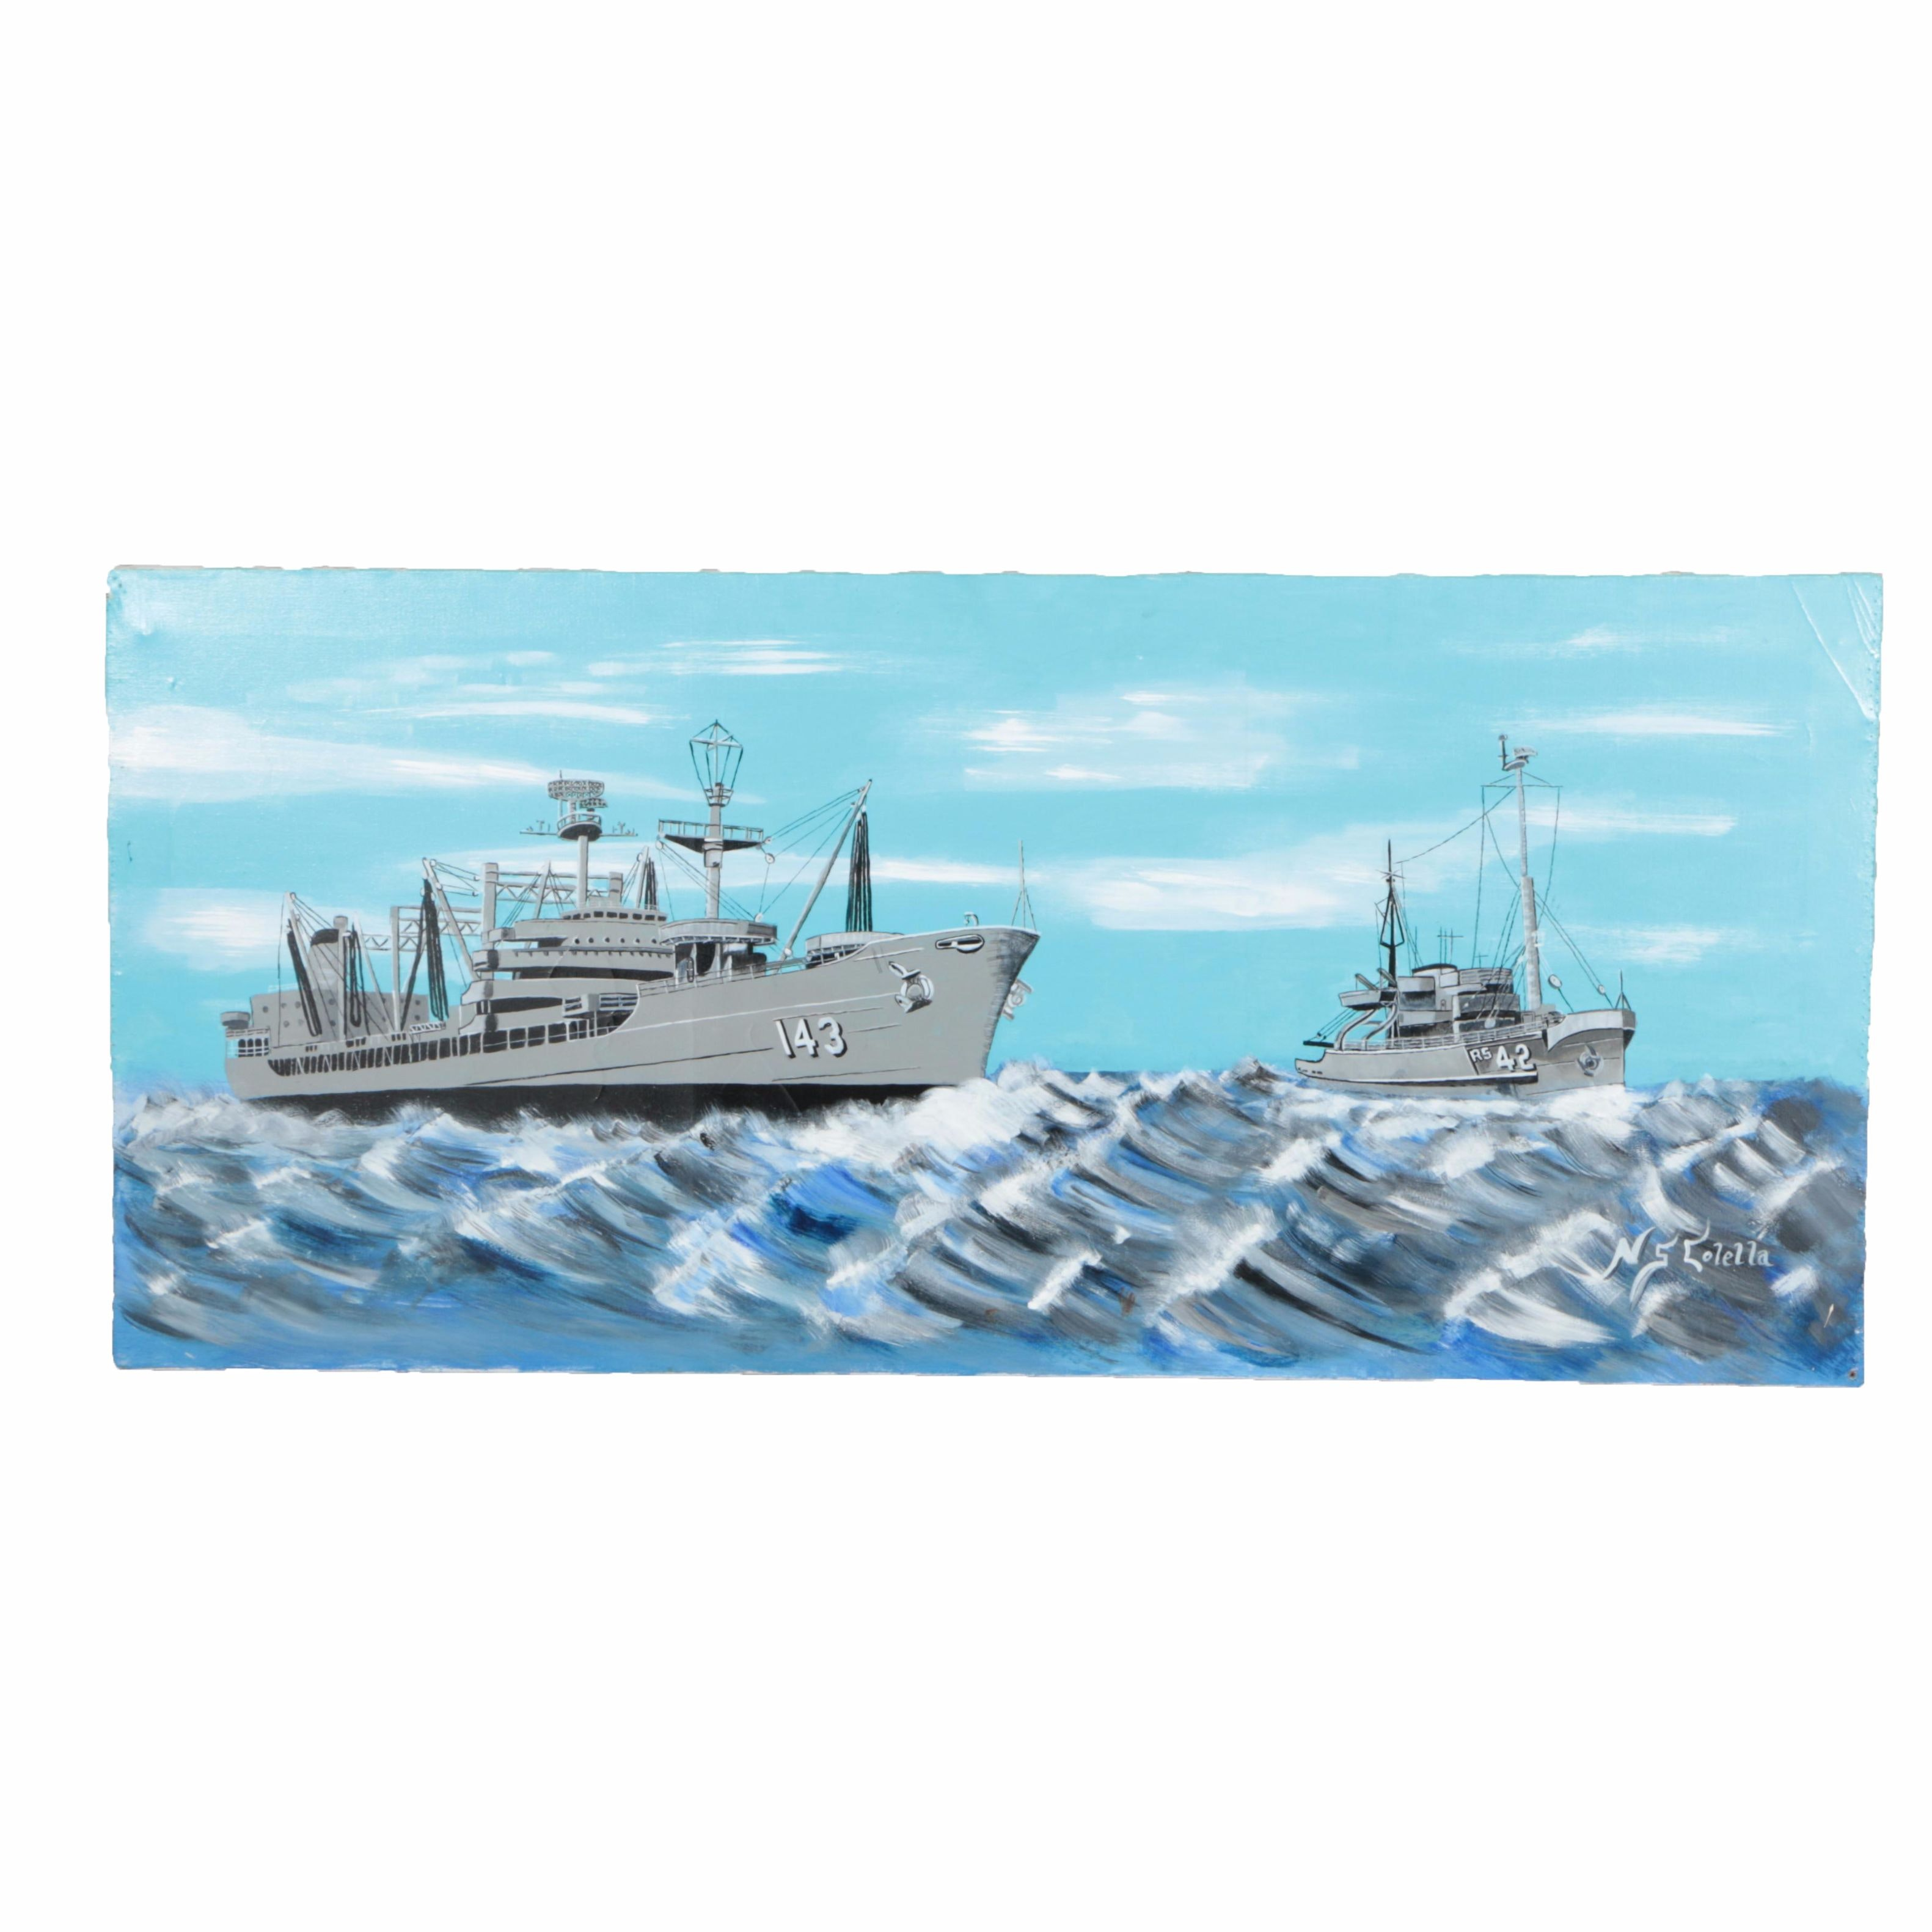 N.S. Colella Acrylic Painting on Canvas of Naval Ships